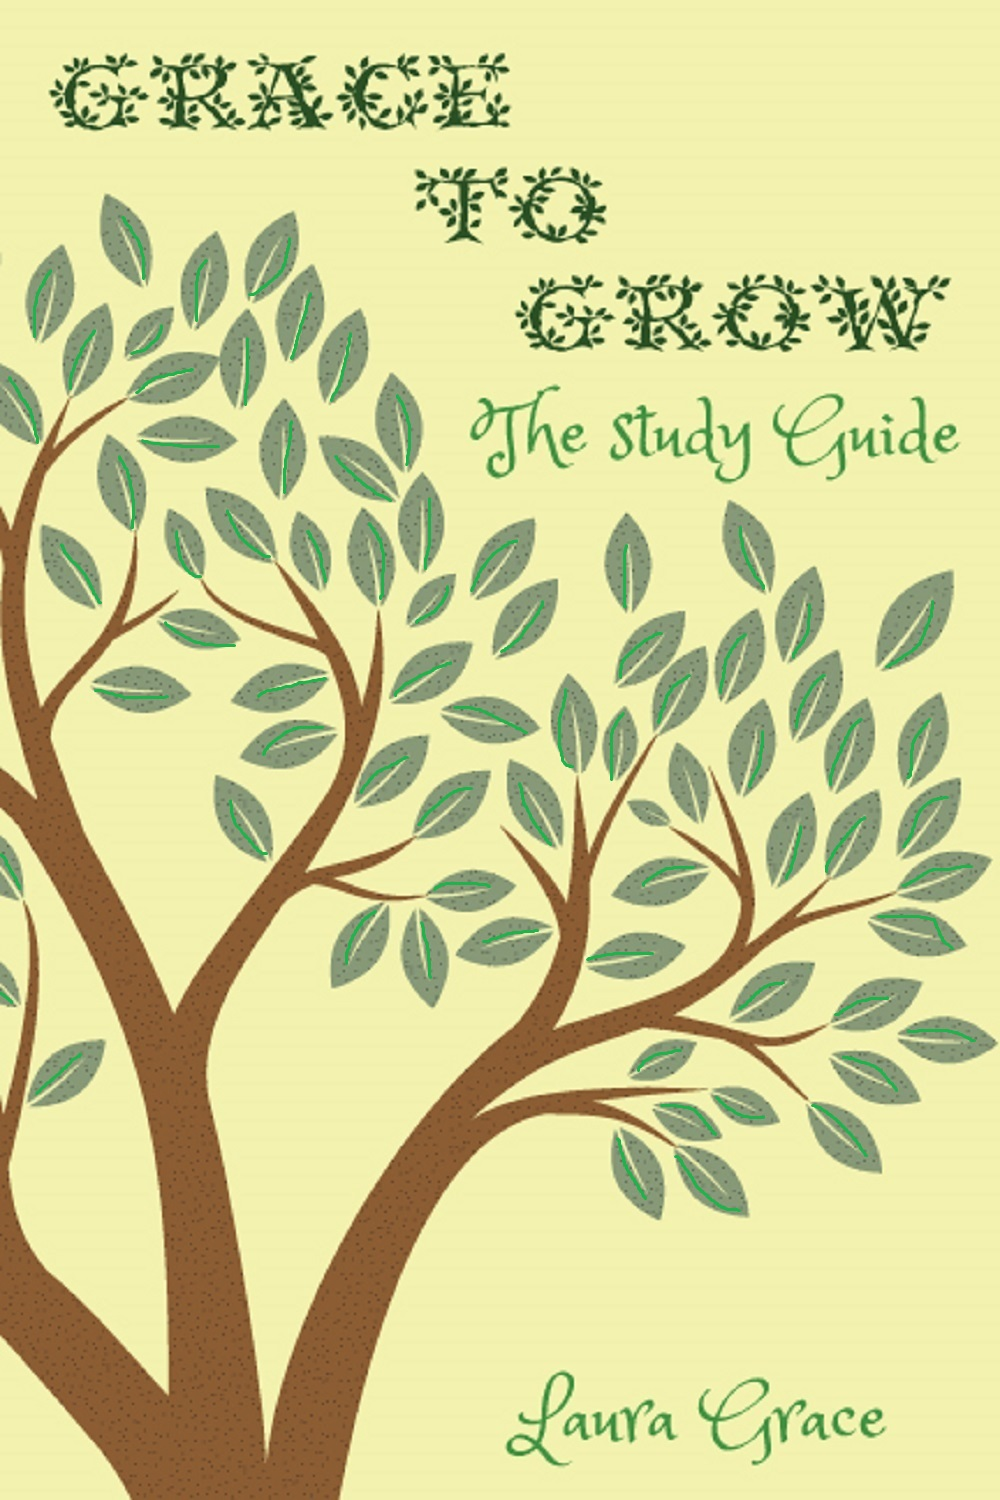 GRow study guide leaves.jpg